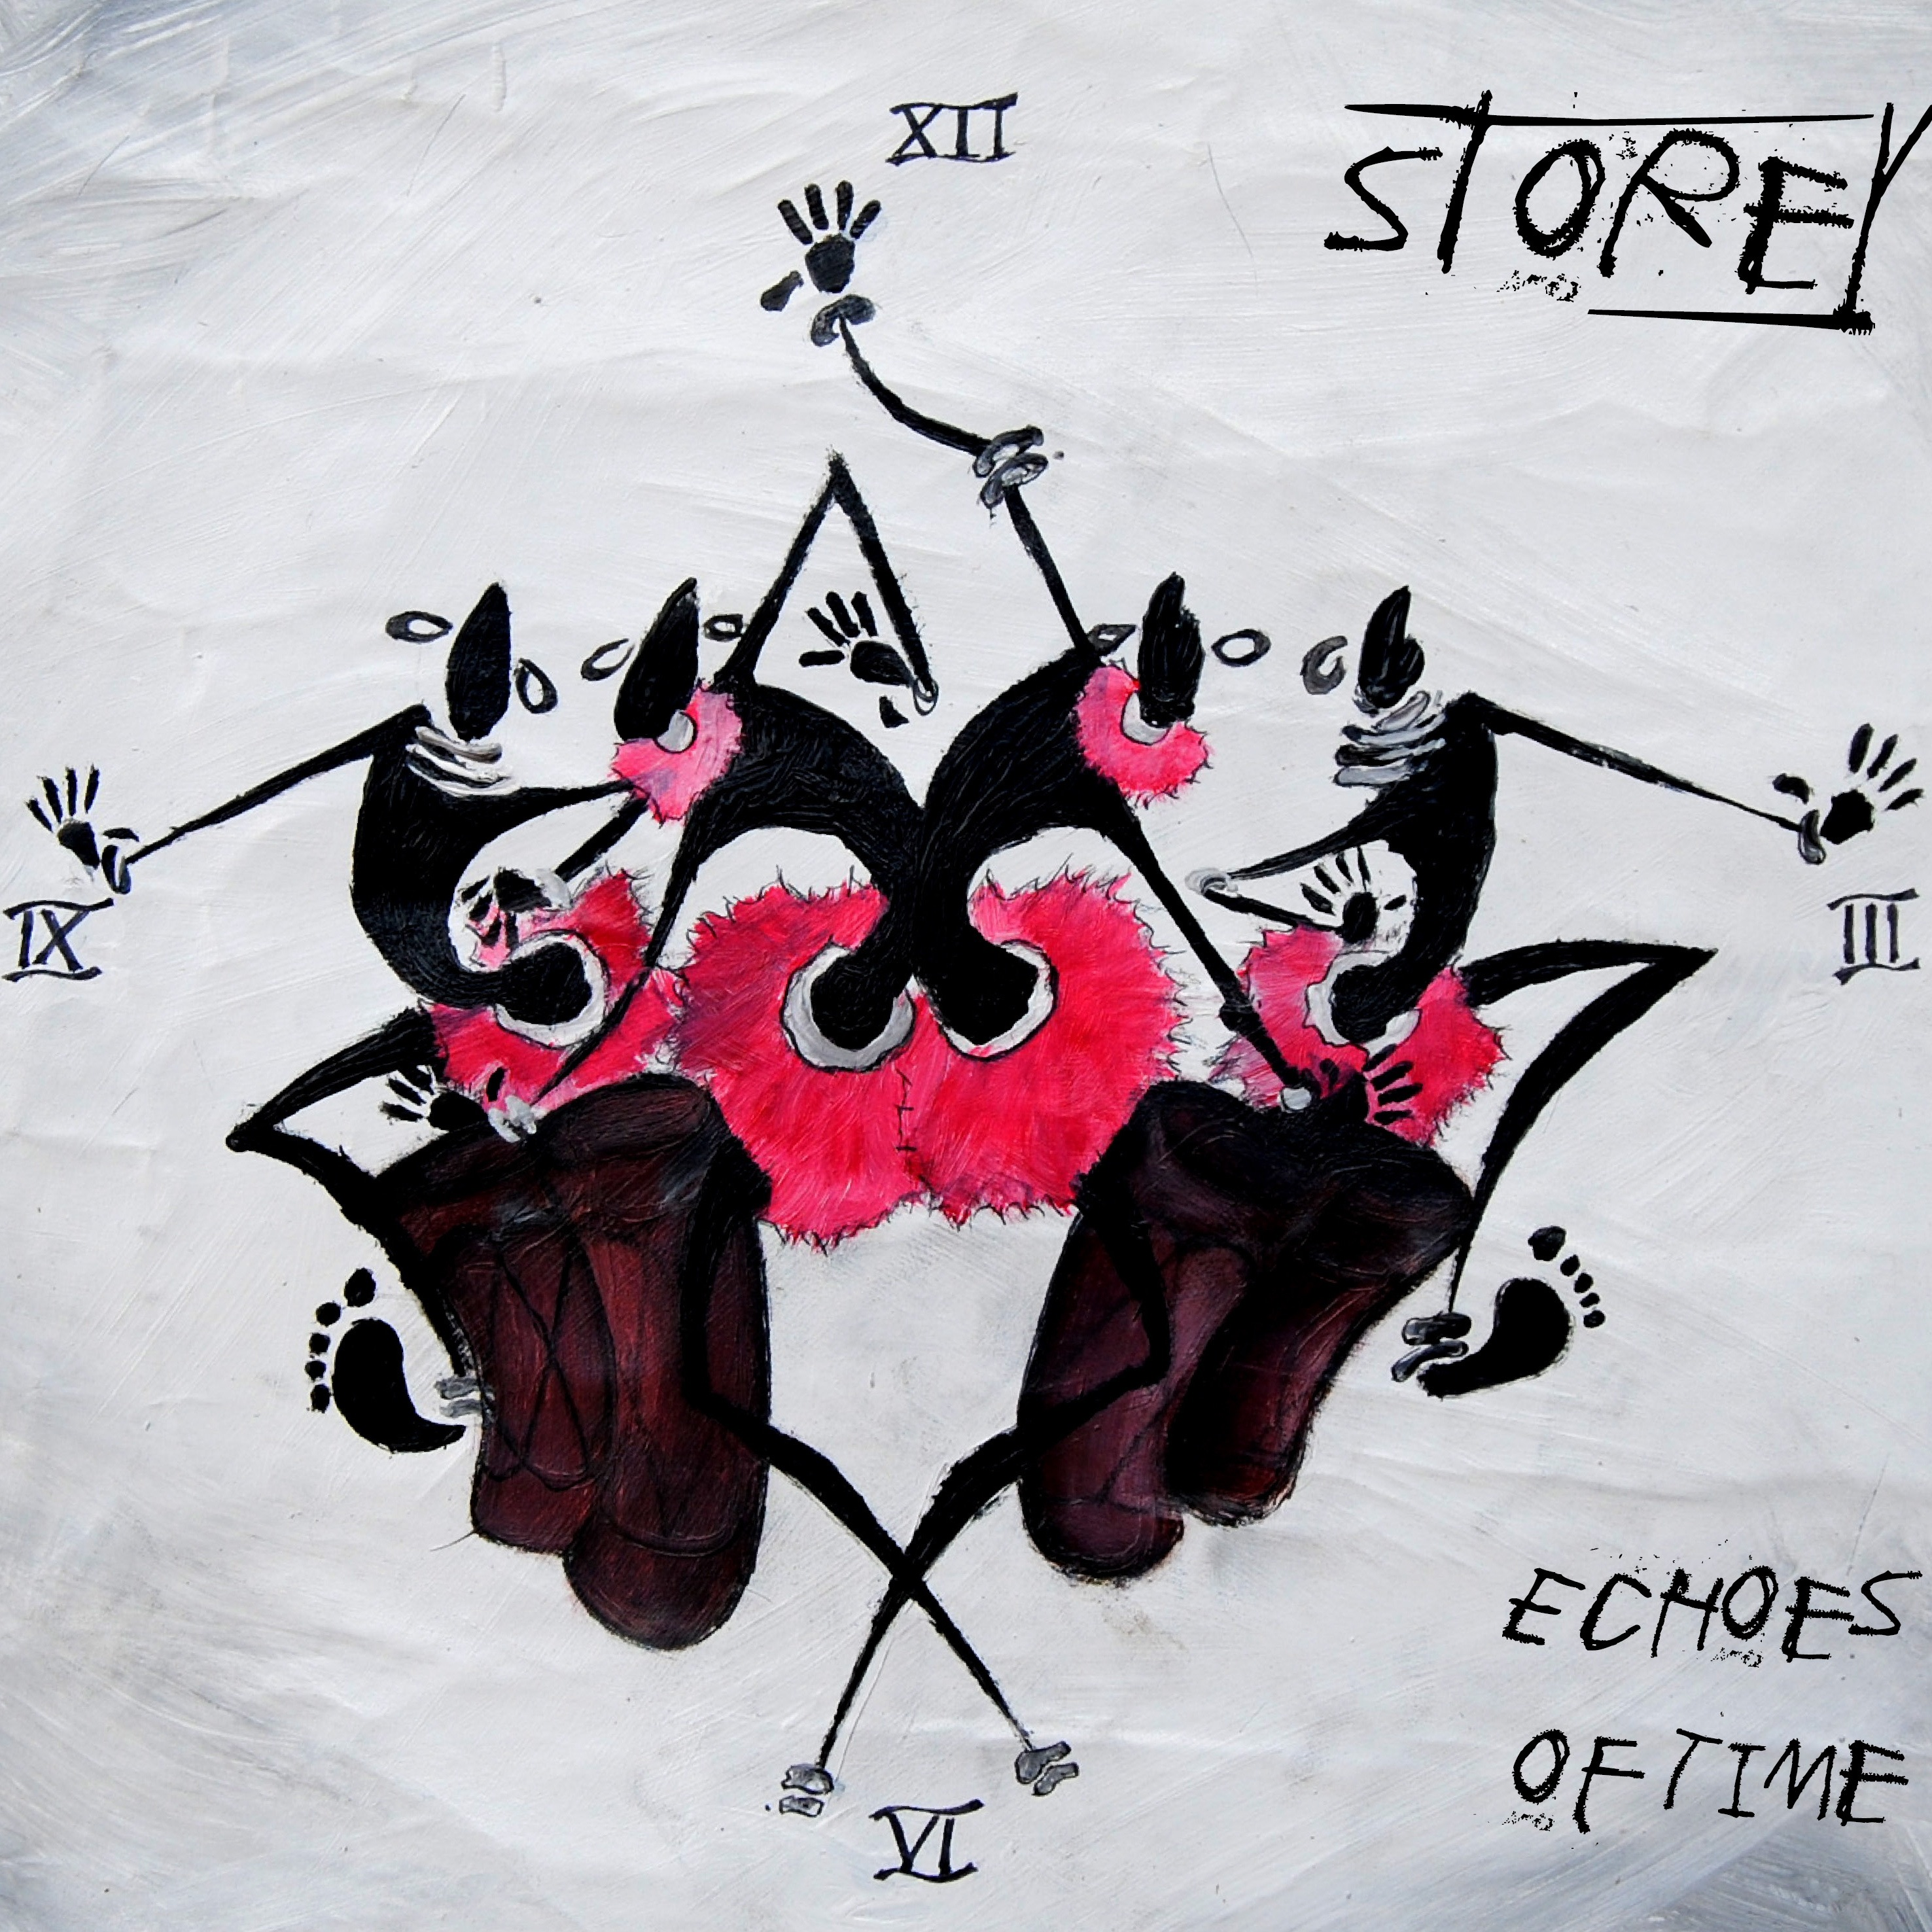 Storey - Echoes of Time. Produced by Arron Storey.